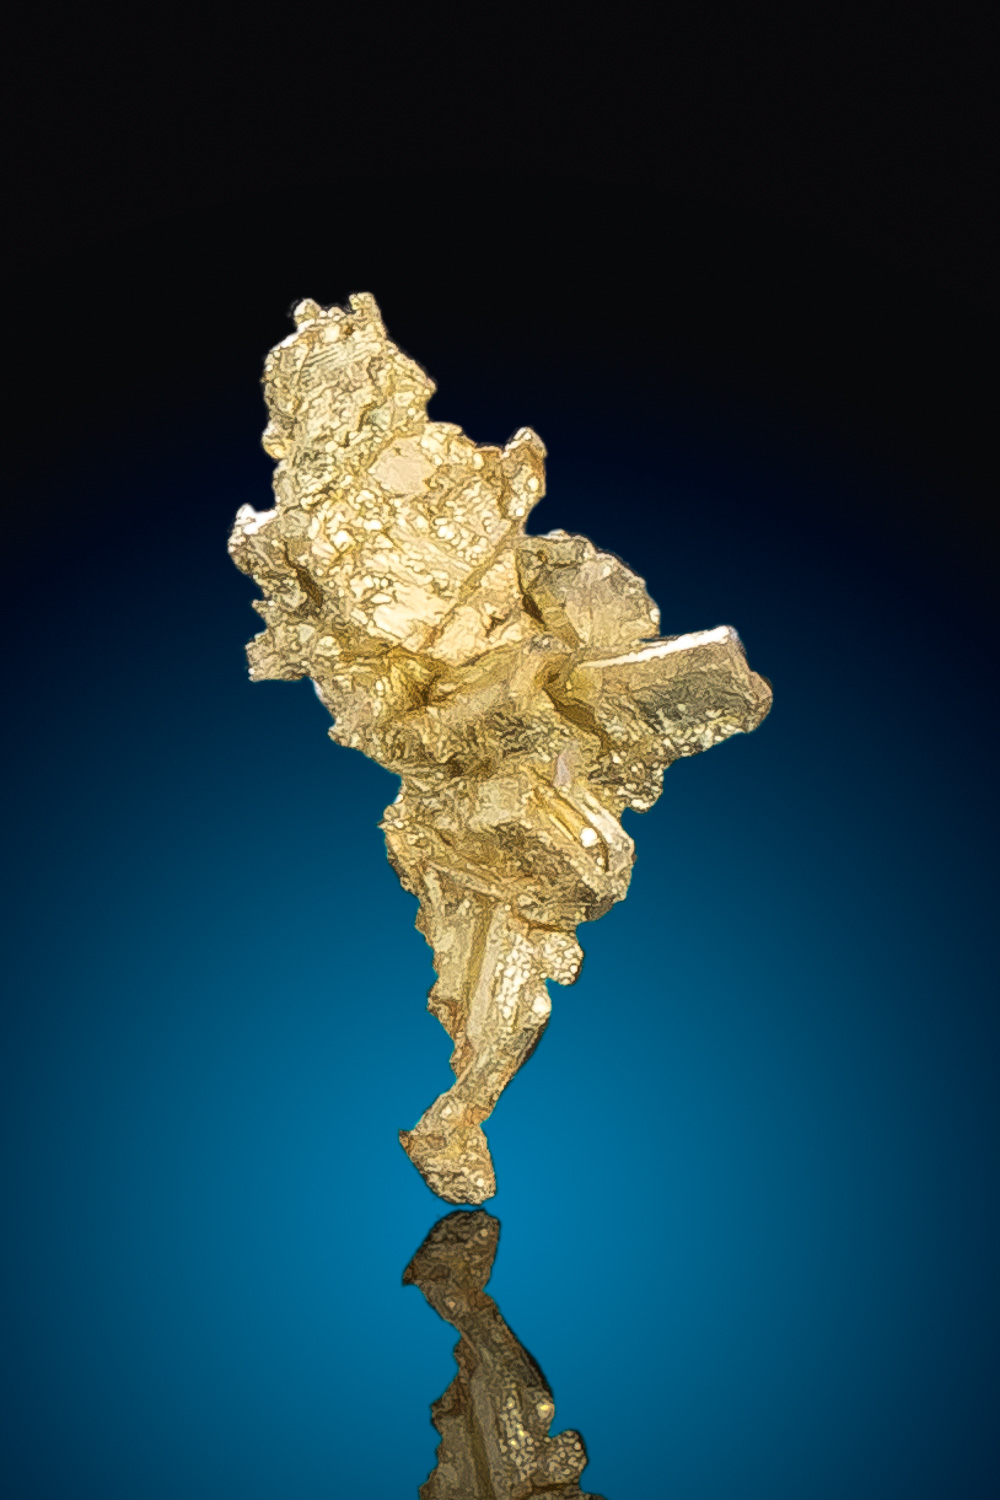 Brilliant Gold Nugget Crystal - Round Mountain Gold Mine